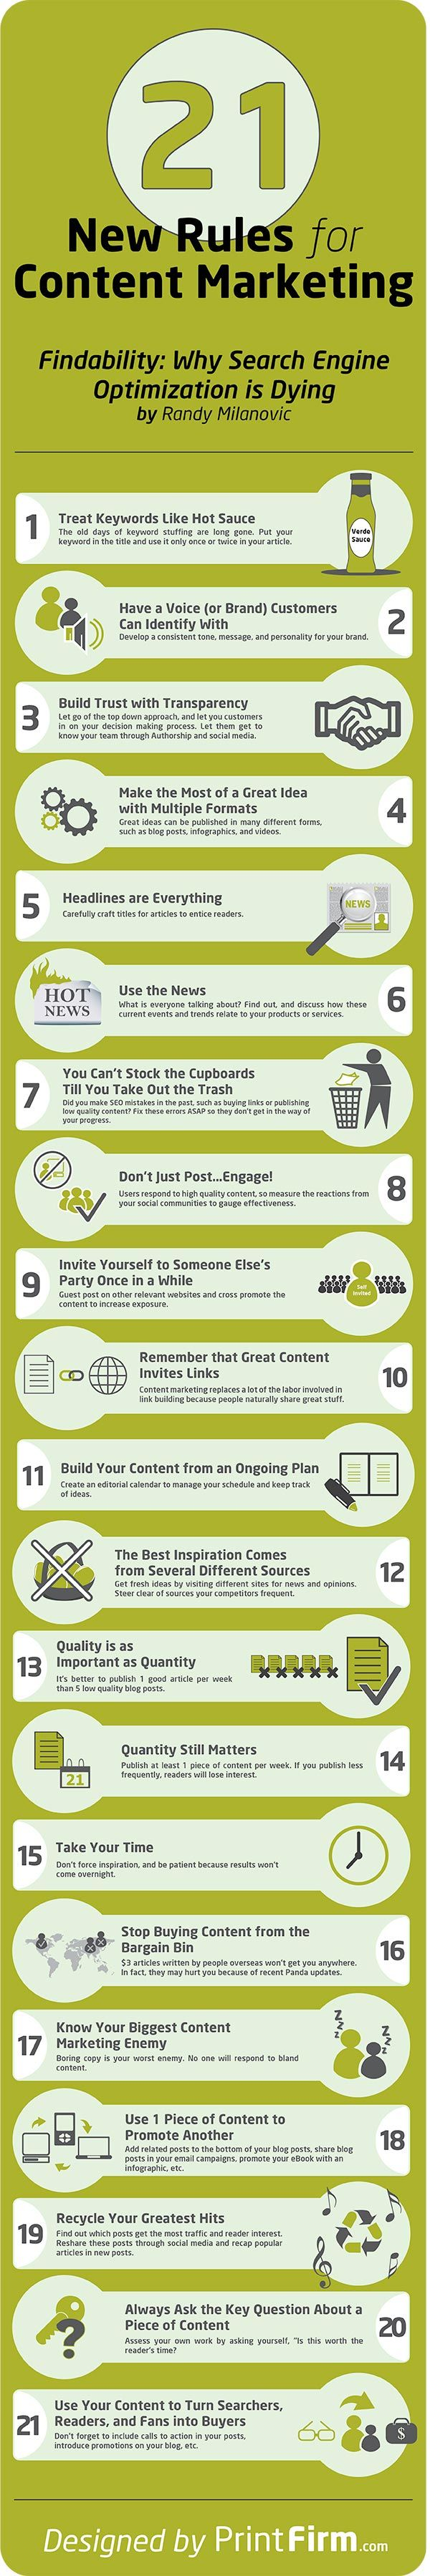 21 New Rules for #ContentMarketing #infographic